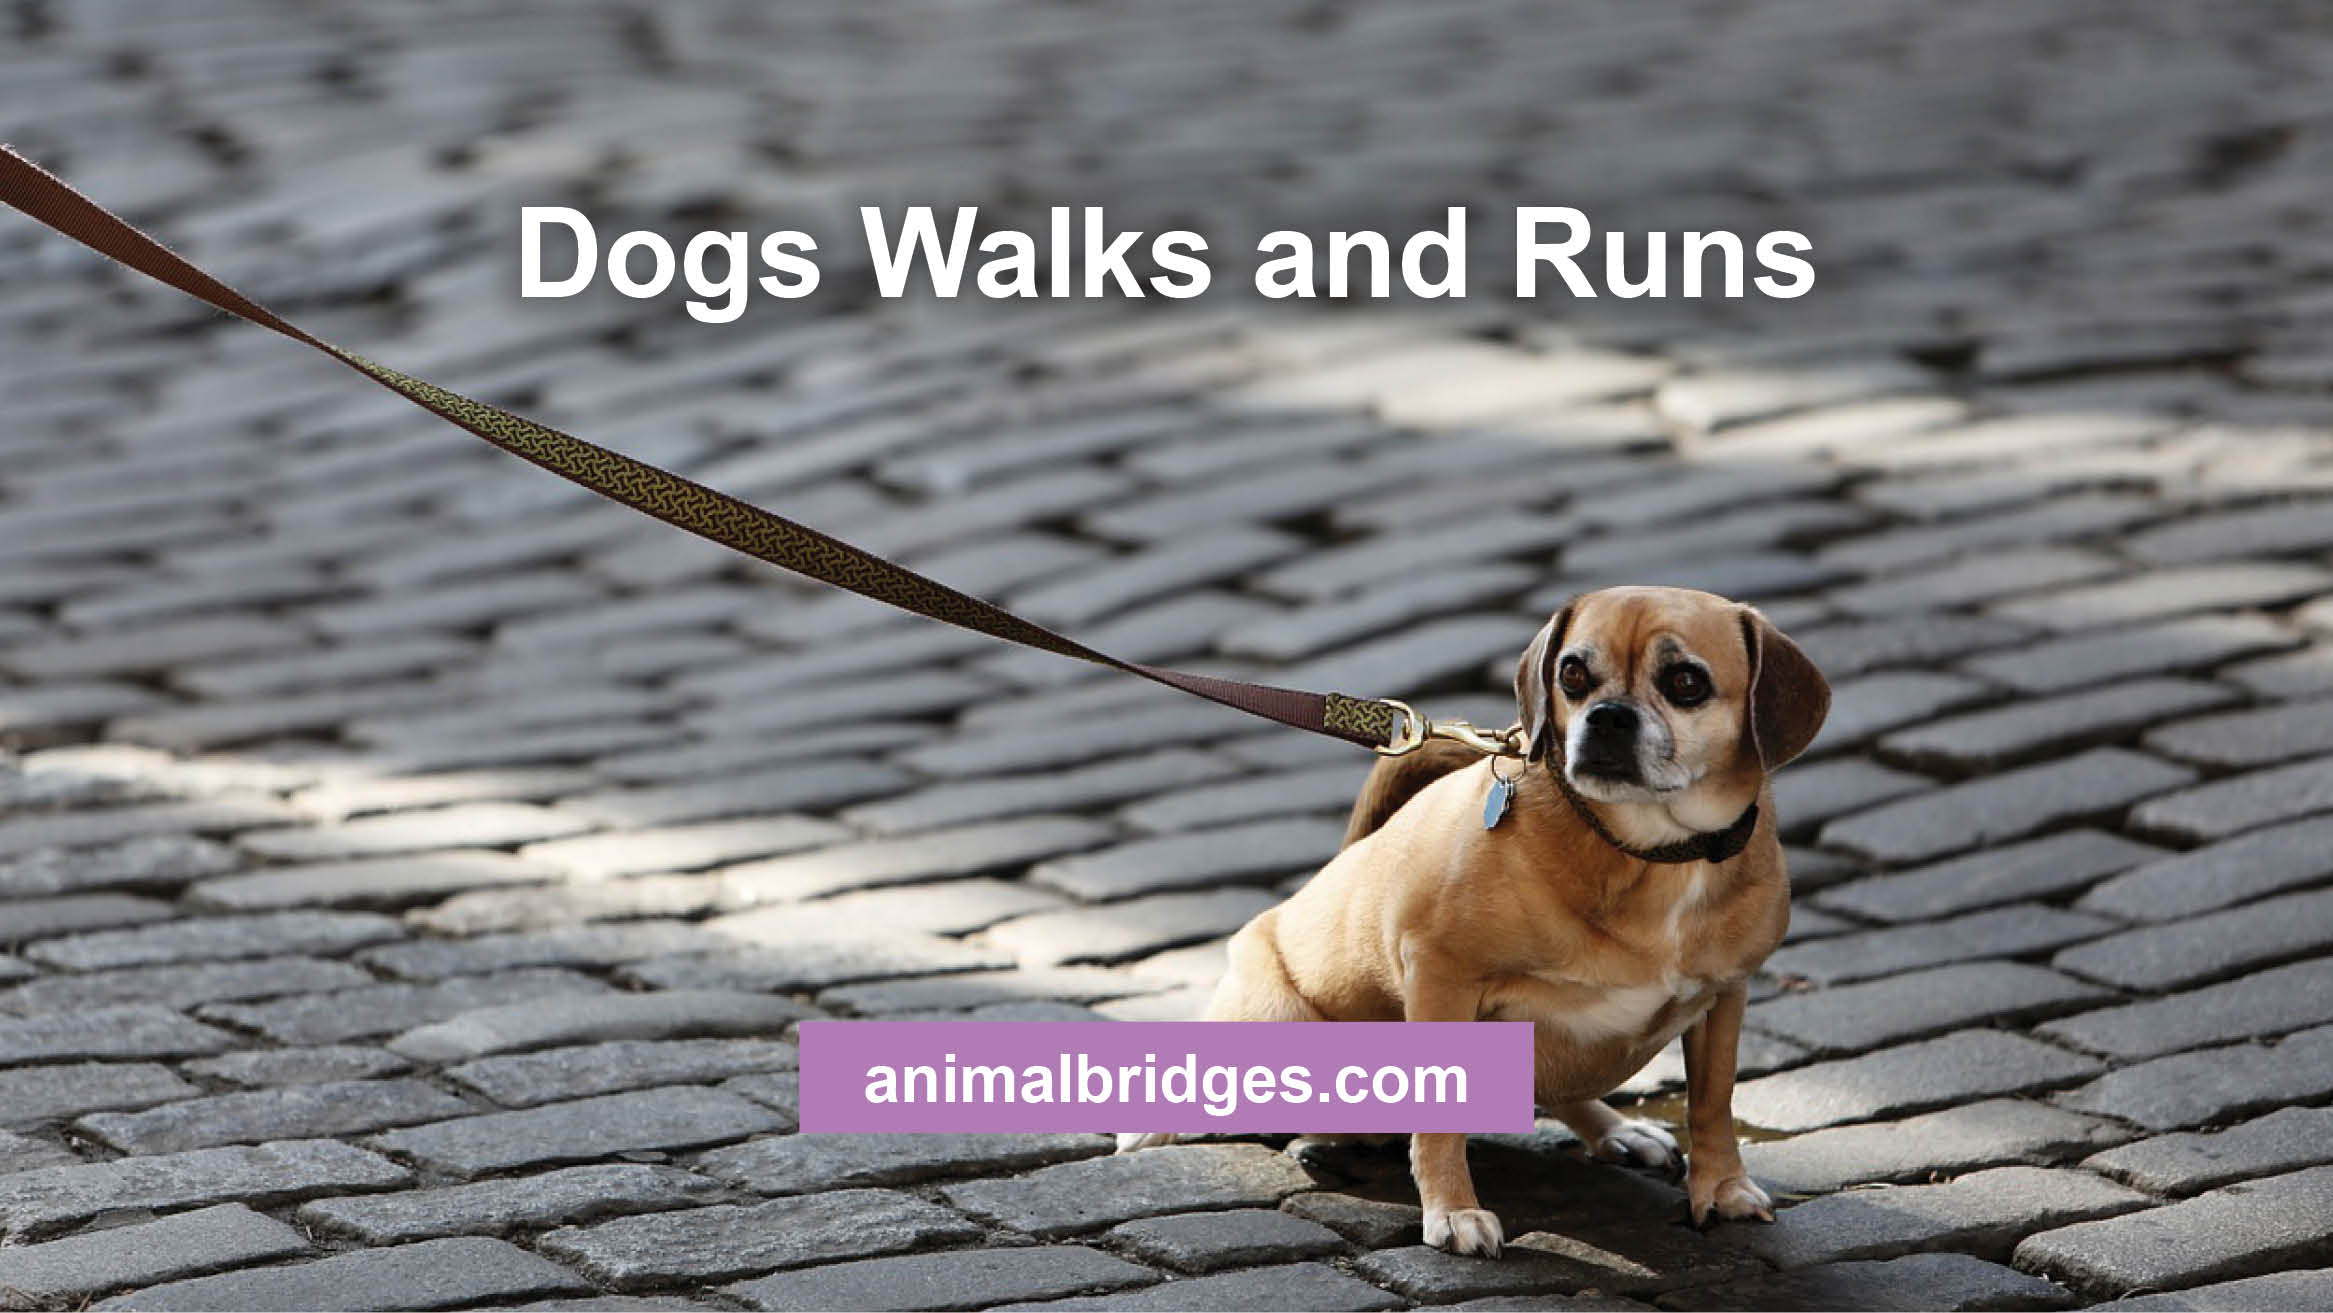 Dogs walks and runs